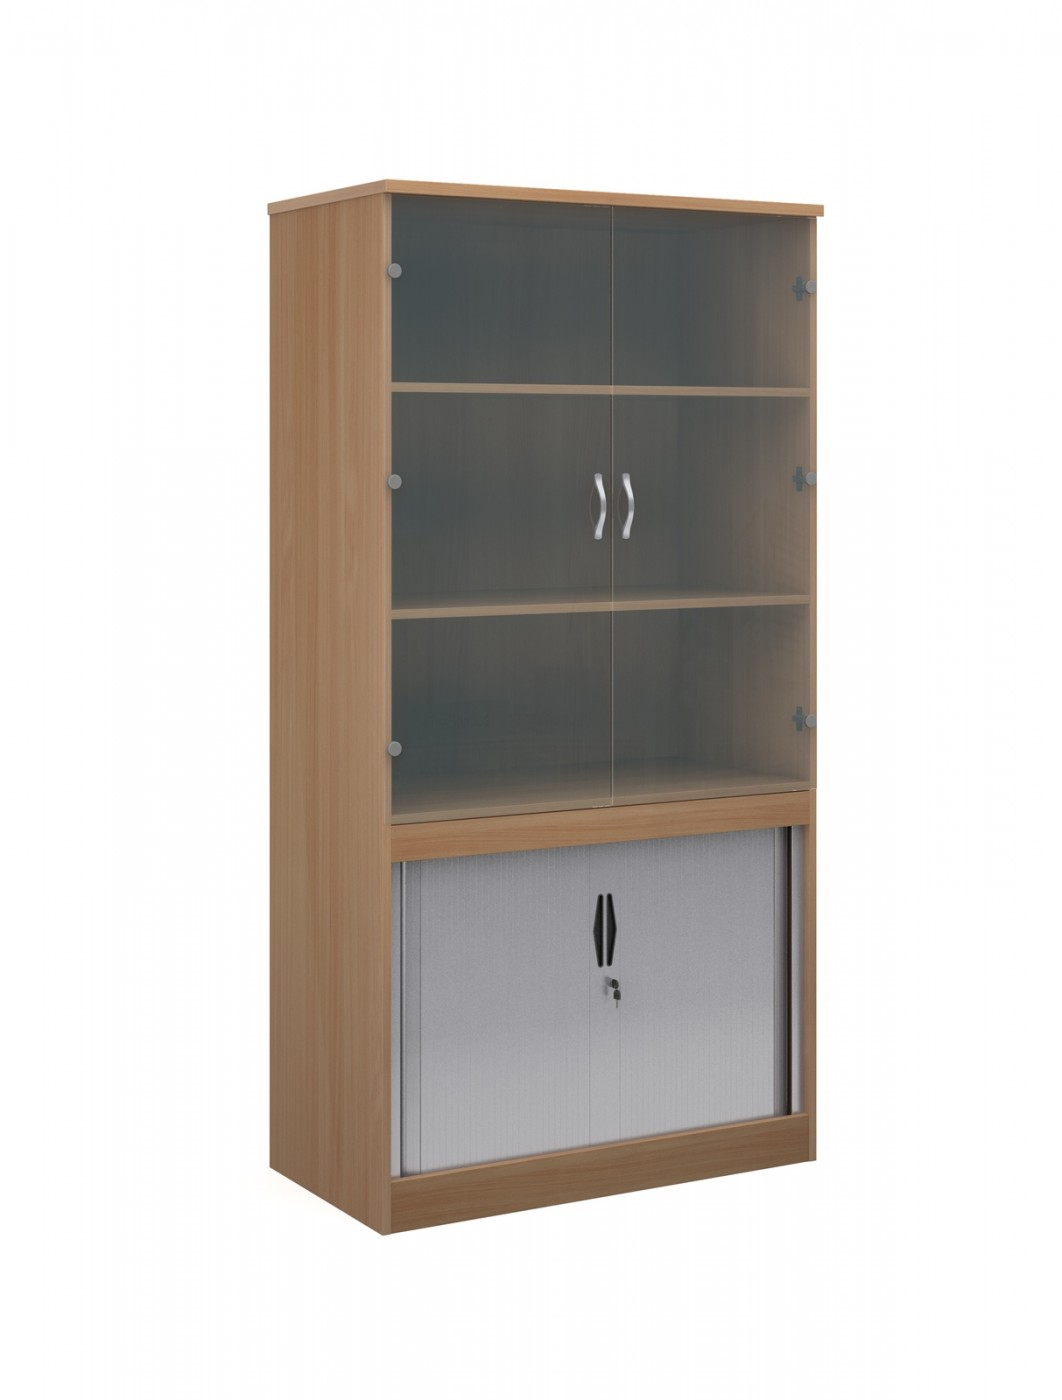 System Combination Bookcase Tg20 121 Office Furniture